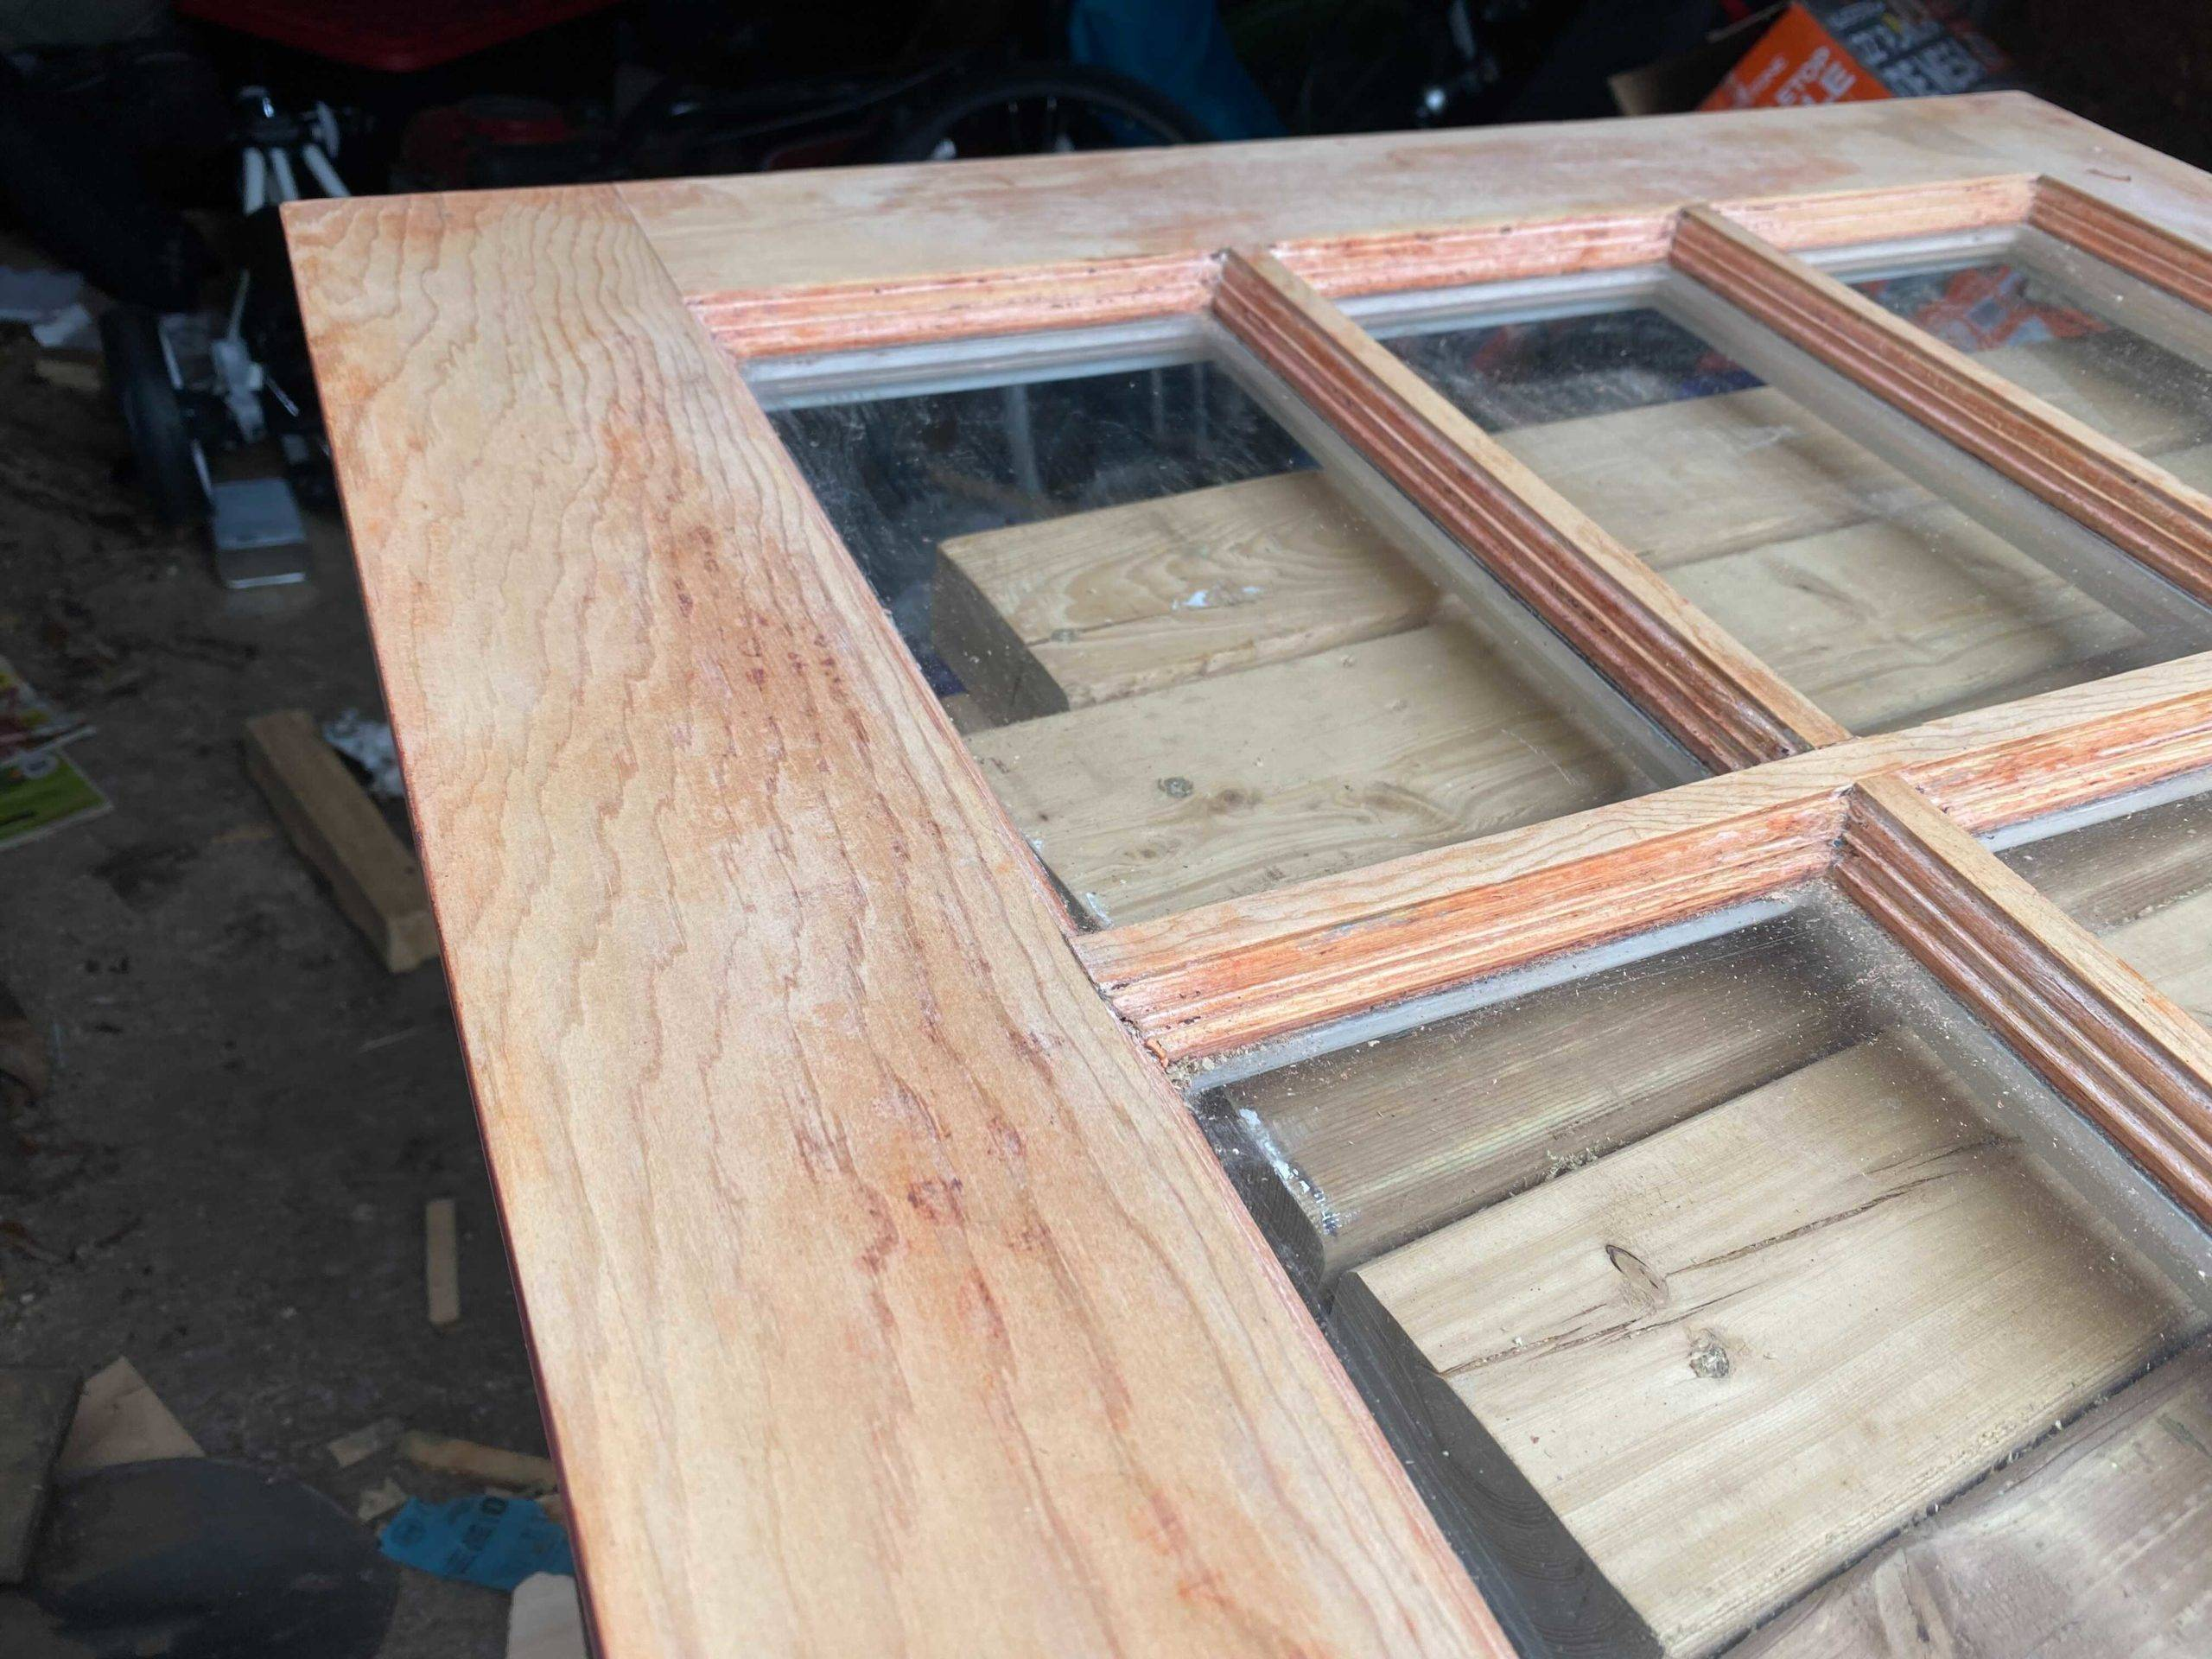 window pane after sanding and stripping